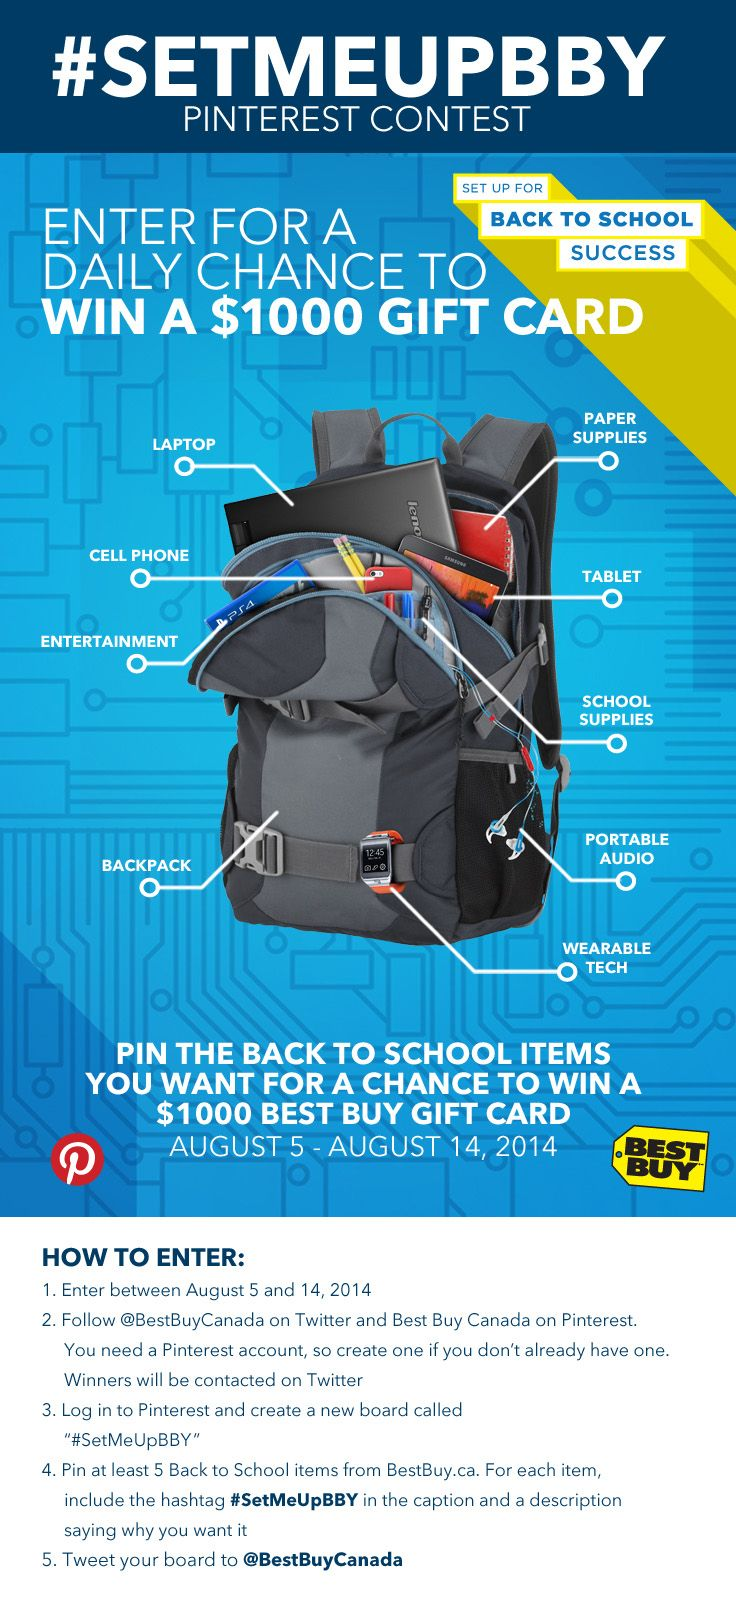 Pin the Back to School items you want for a daily chance to win a $1000 Best Buy gift card. Be sure to include #SetMeUpBBY in the caption and Tweet your board to @BestBuyCanada. Contest runs until August 14, 2014. Click for full contest details. Good luck!